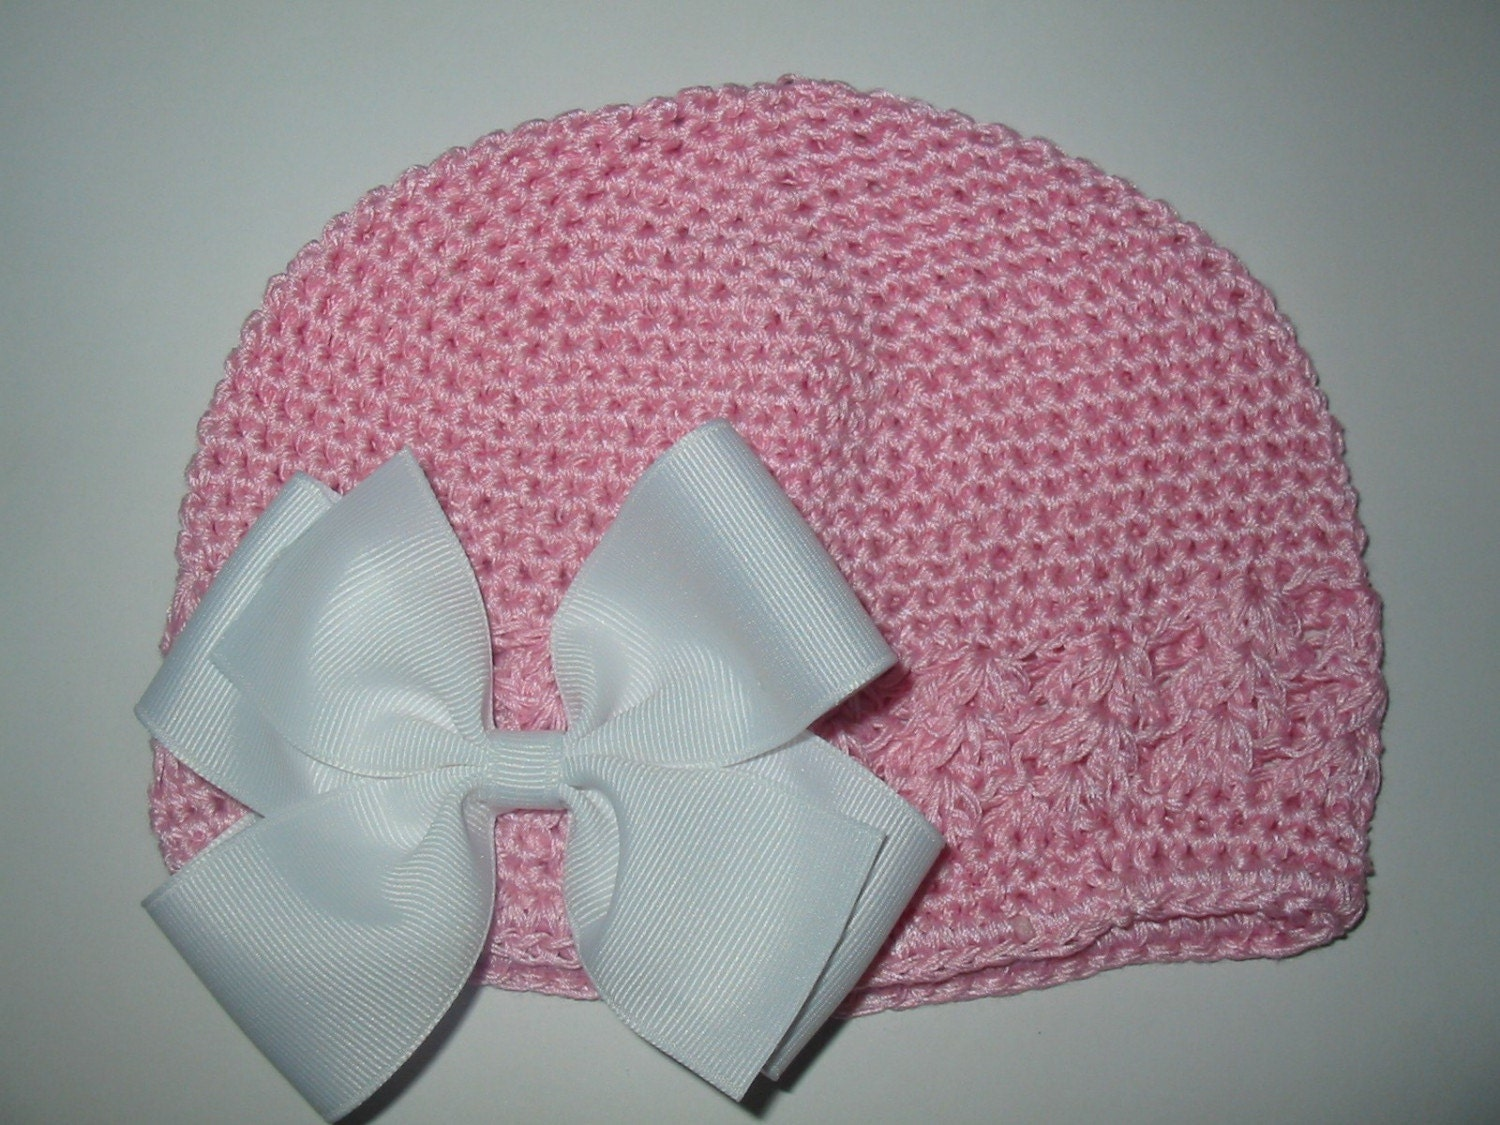 Kufi Beanie Hat Crochet Pattern : NEW INFANT Pink Crochet Kufi Beanie Hat with Interchangeable